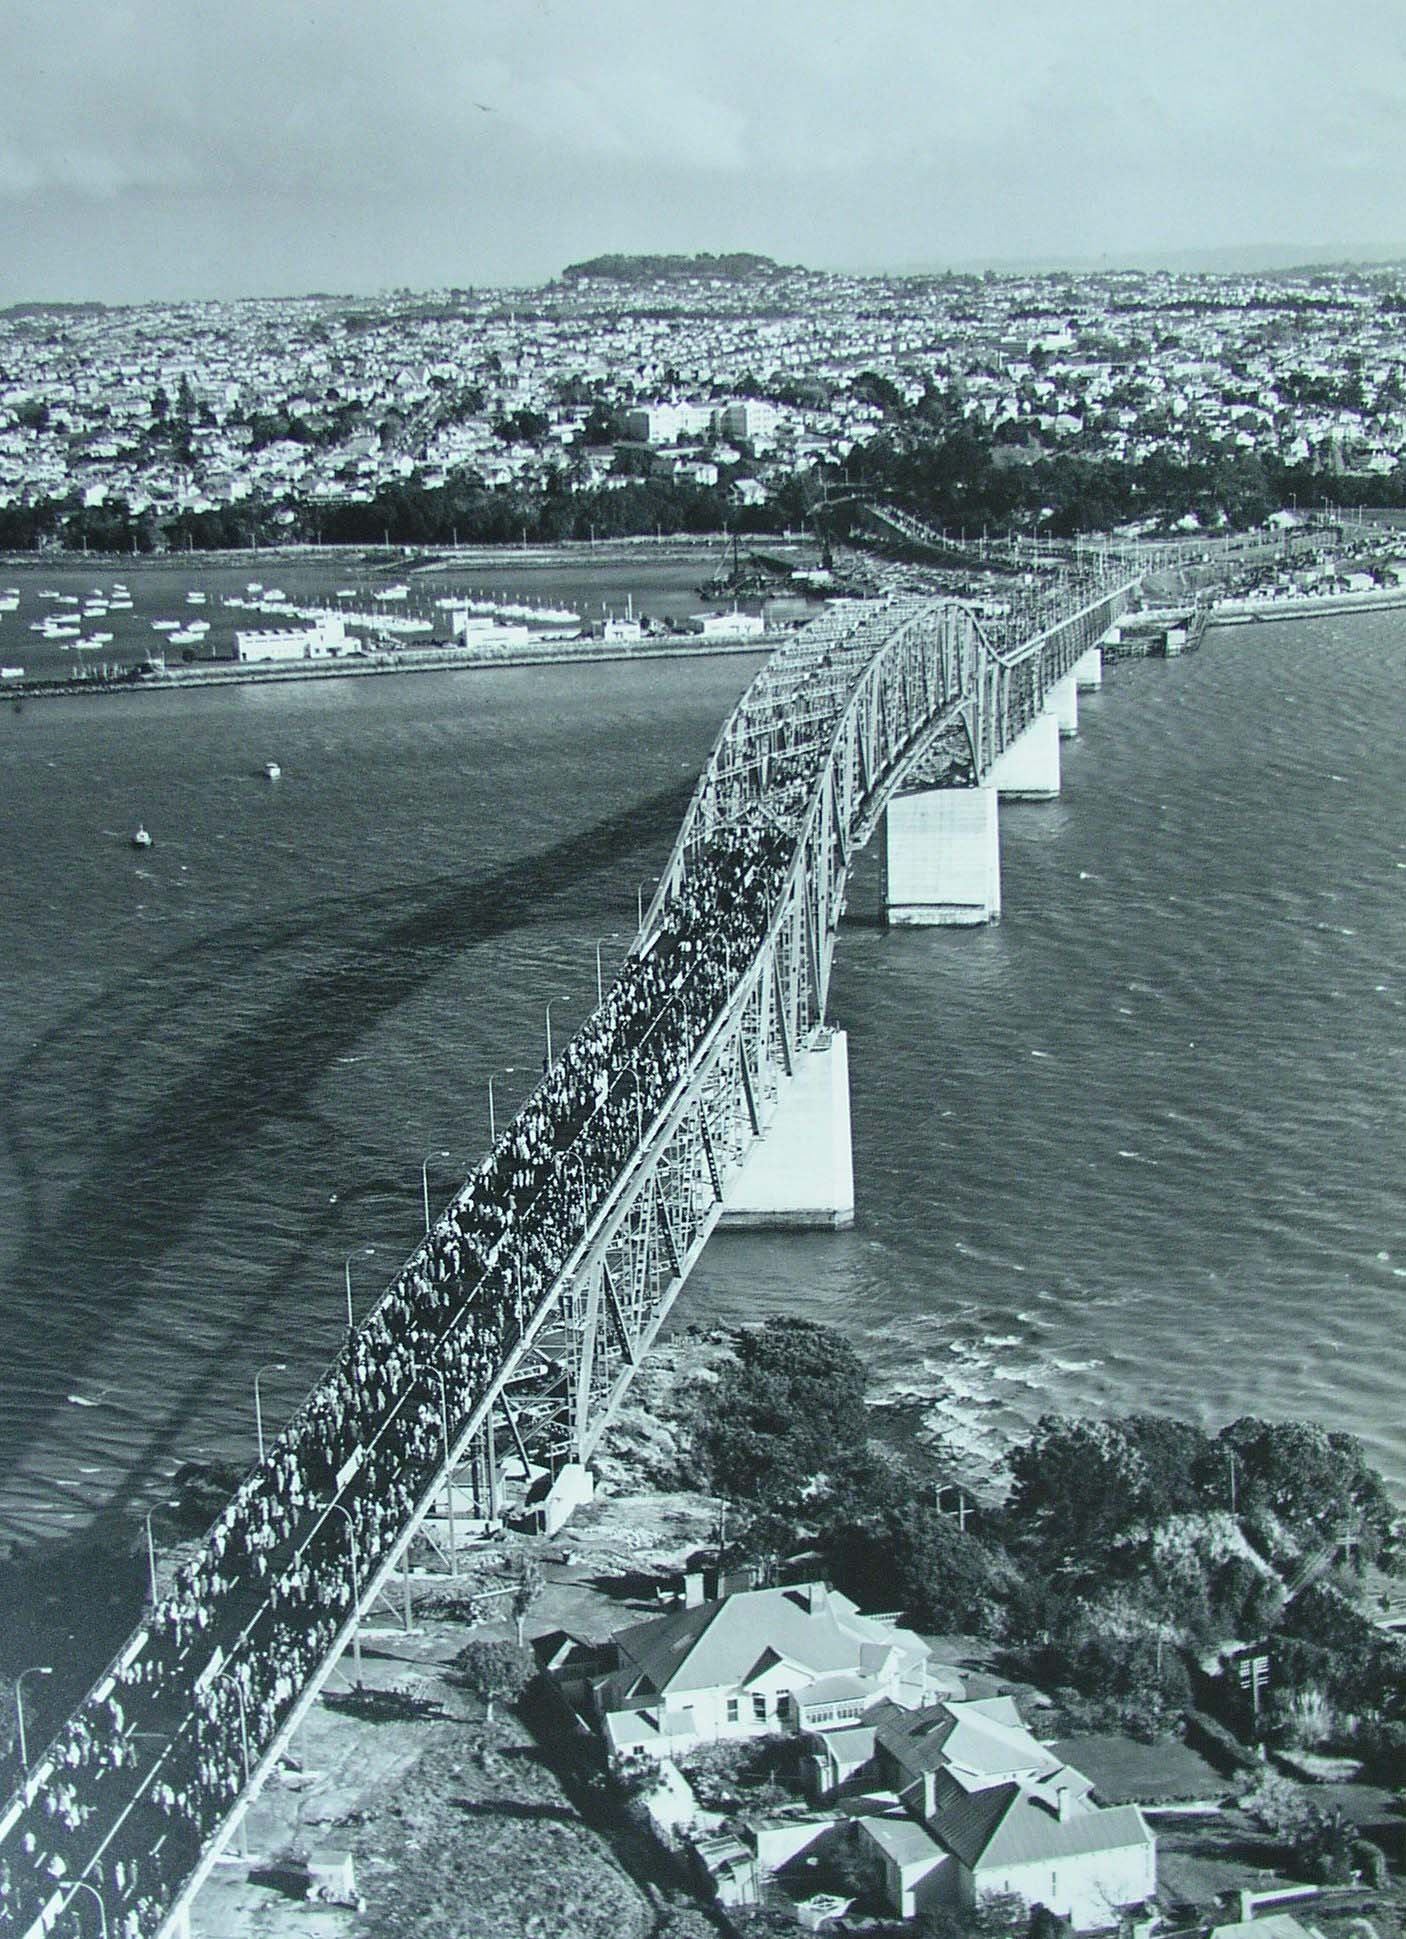 A large number of people crossing the completed Auckland Harbour Bridge